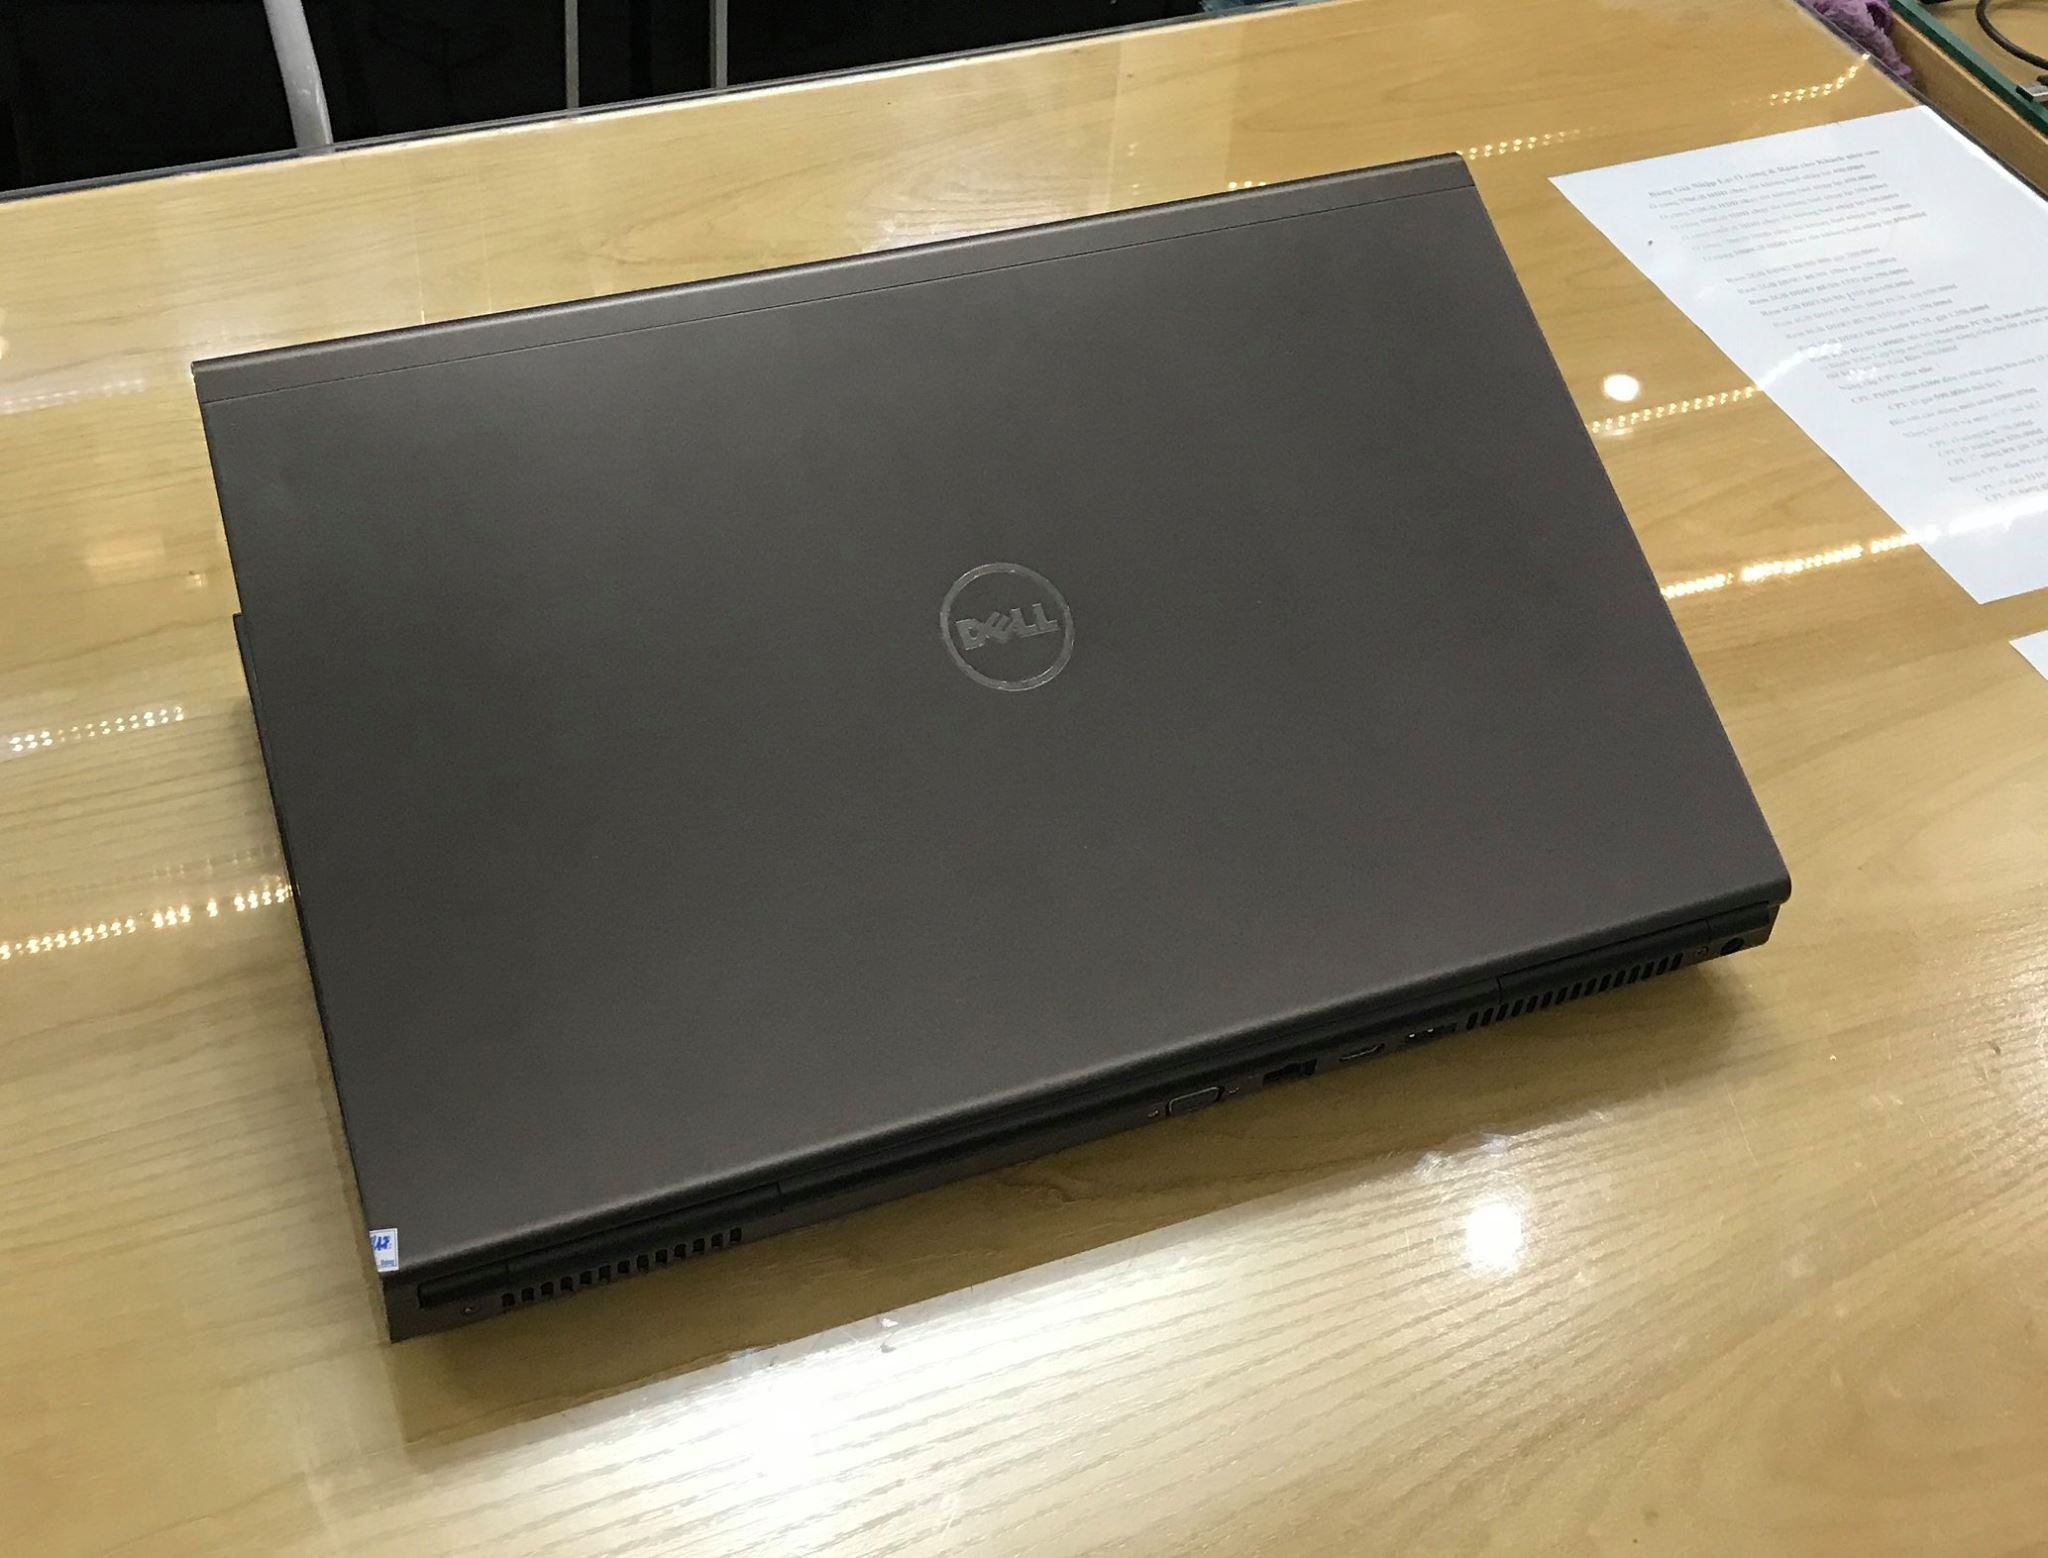 Dell Precision M6800 Mobile Workstation i7 4810QM | RAM 8 GB | HDD 500 G | 17.3″ Full HD | VGA K2100-DDR5